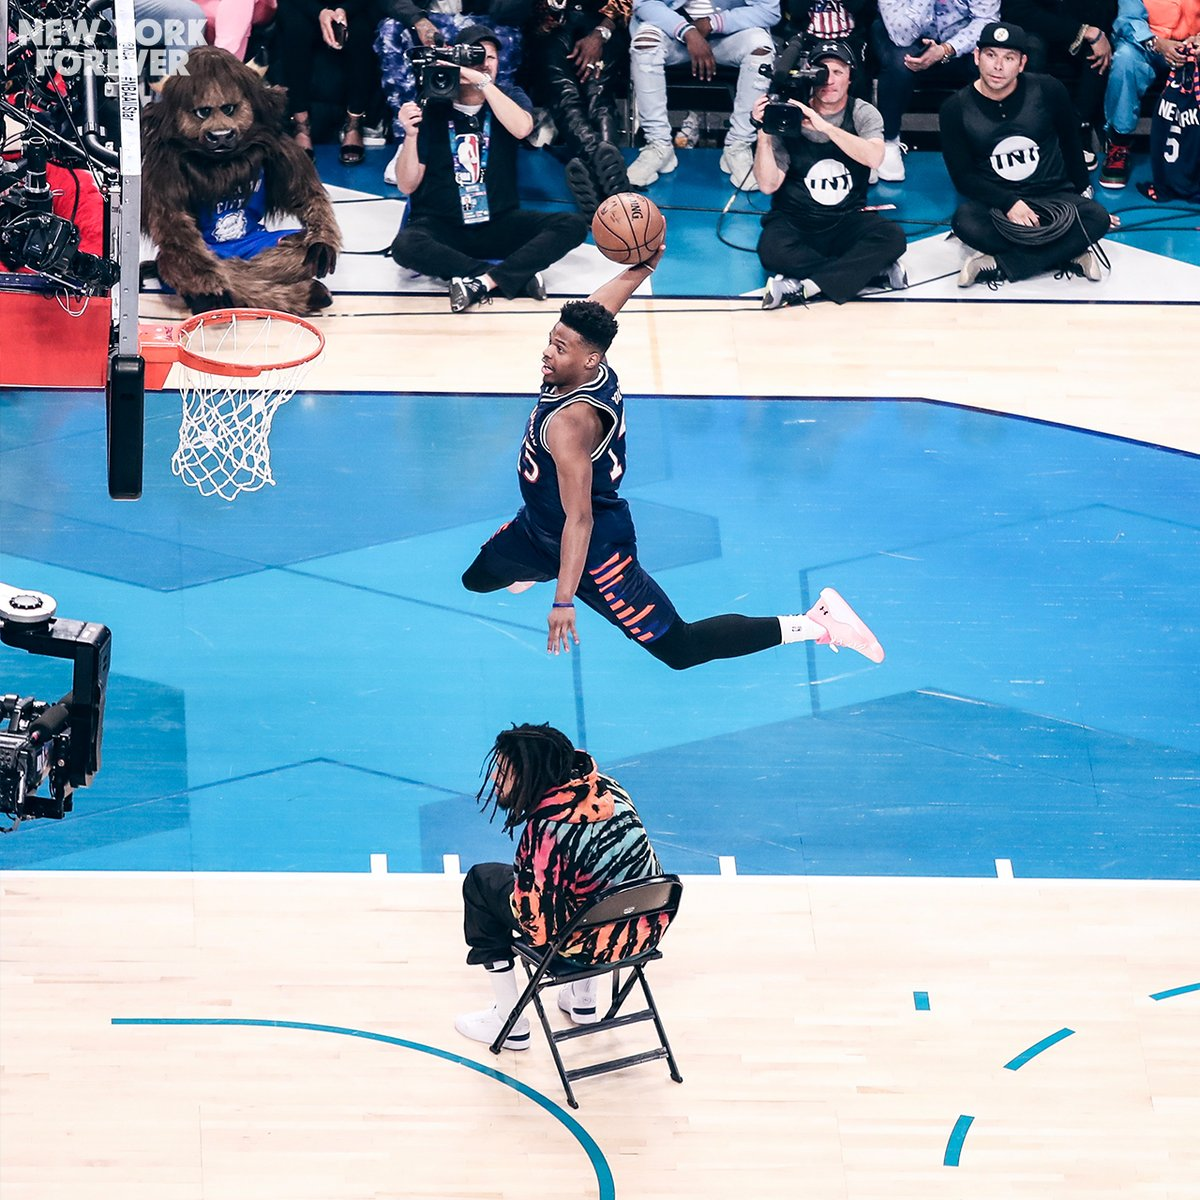 These shots from last year are still crazy ✈️   @Dennis1SmithJr | #NewYorkForever